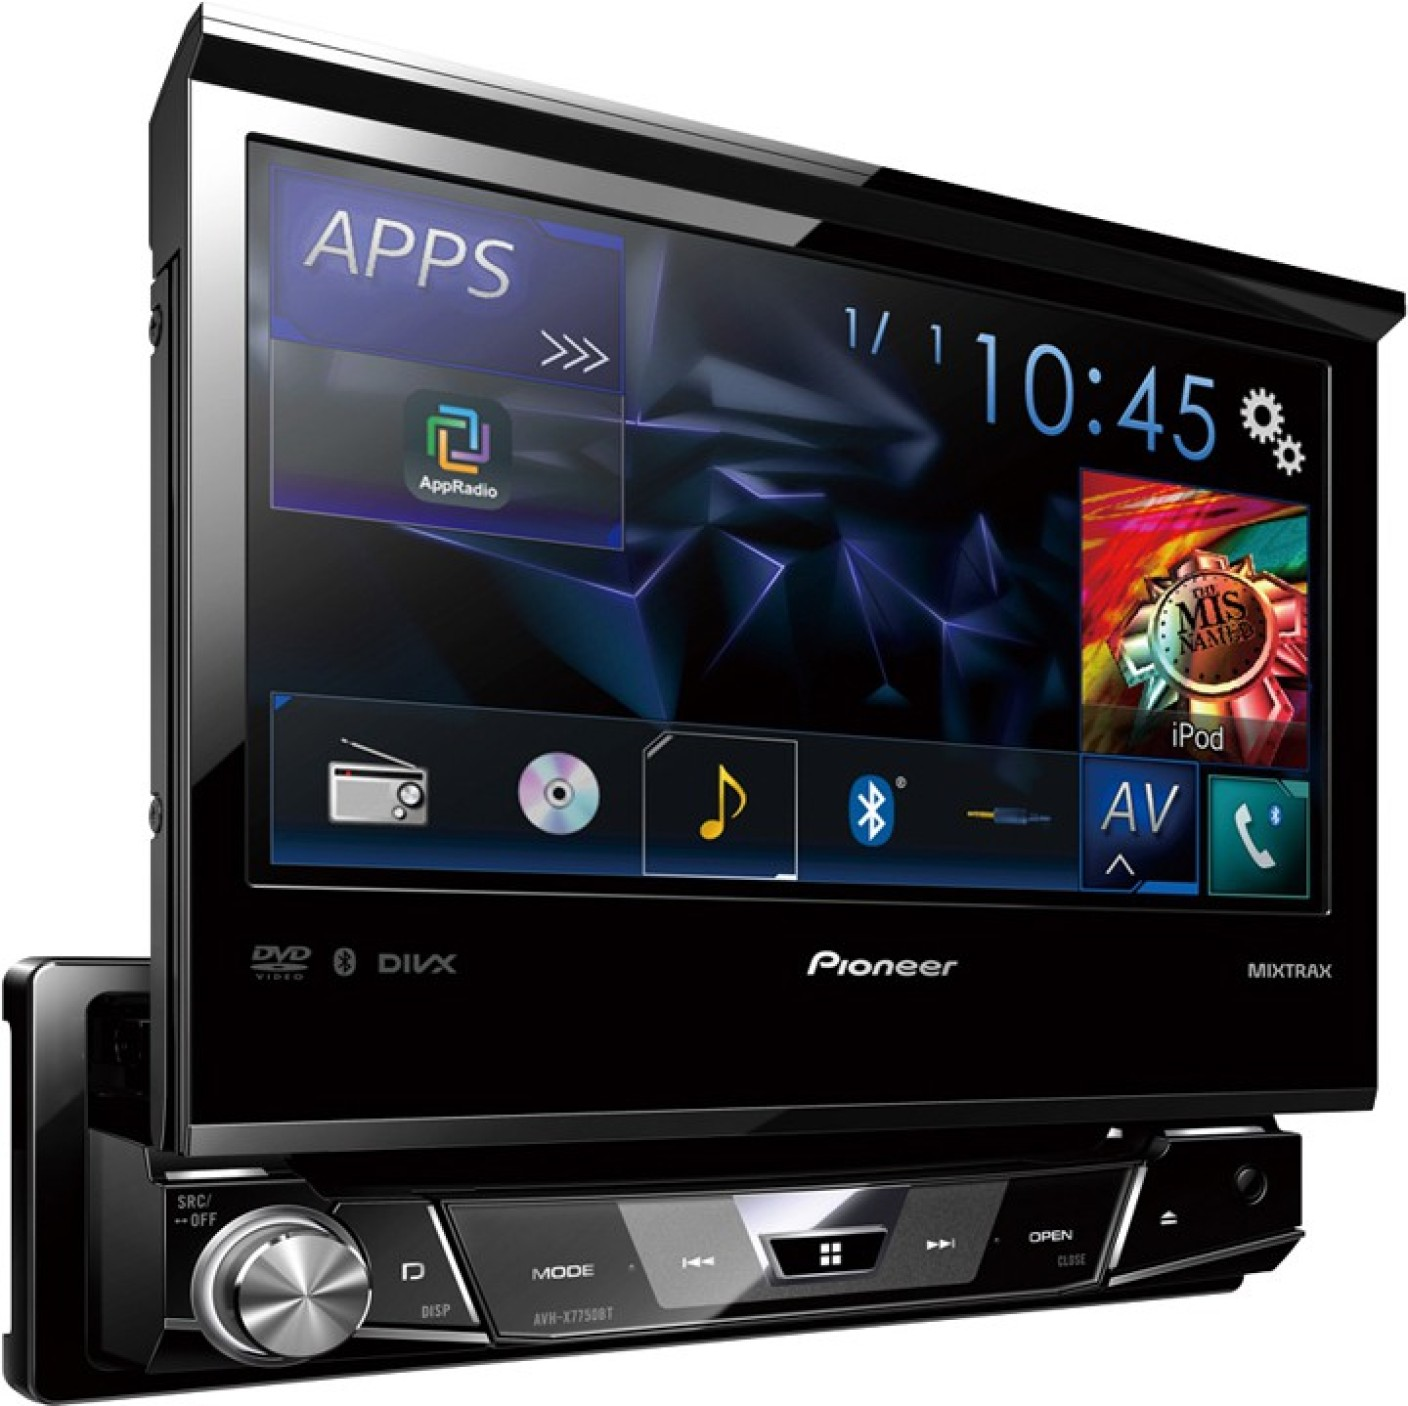 Pioneer Car Stereo Price In India